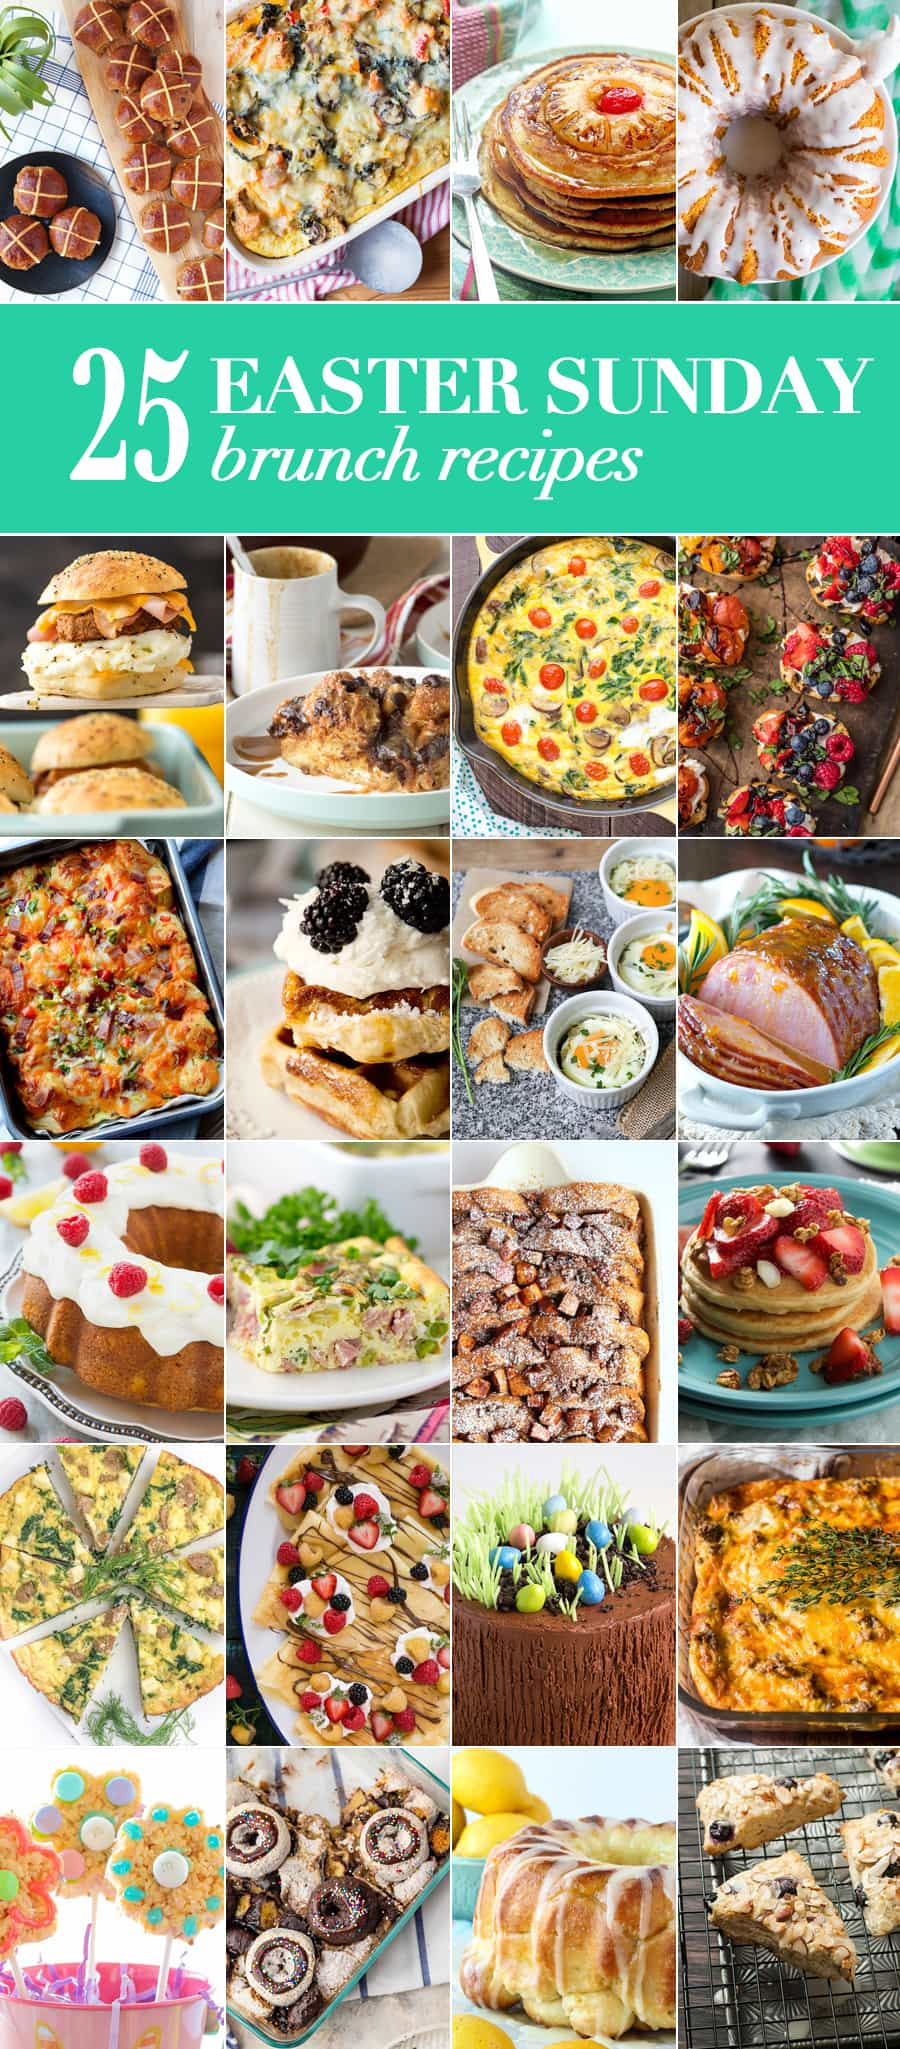 25 Easter Sunday Brunch Recipes to please the entire family! So many great and comforting Easter recipes from sweet to savory and everything in between!